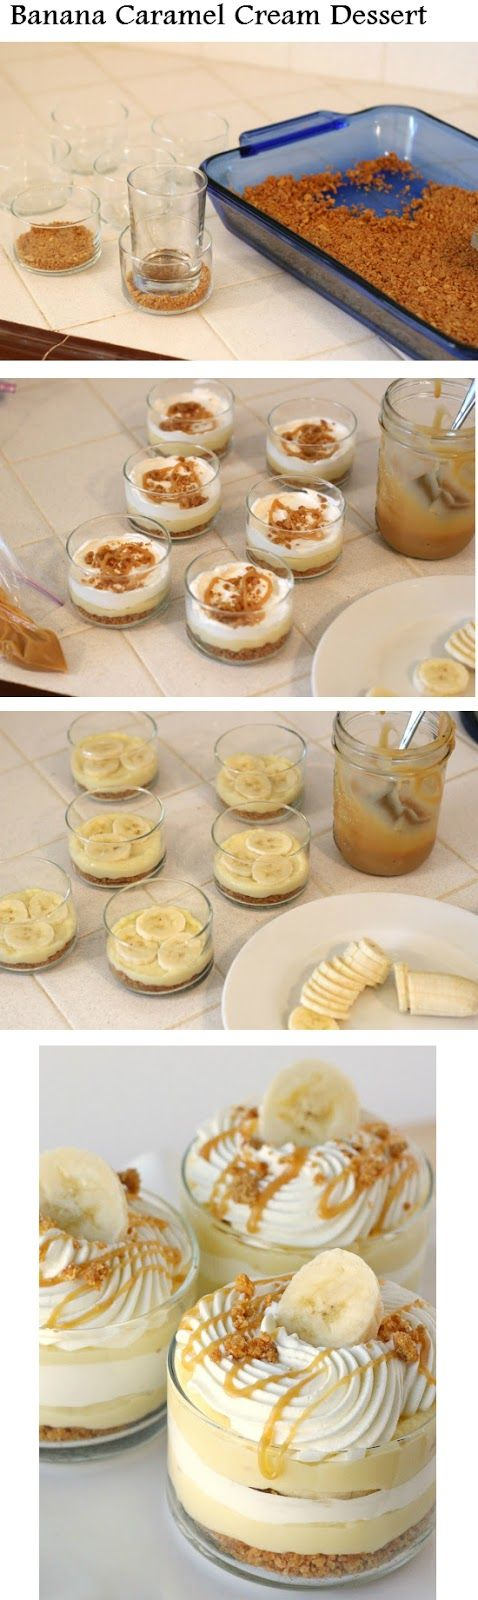 Banana Caramel Cream Dessert | Recipe Sharing Community -- I'm somewhat allergic to bananas but i want this anyway, YOLO